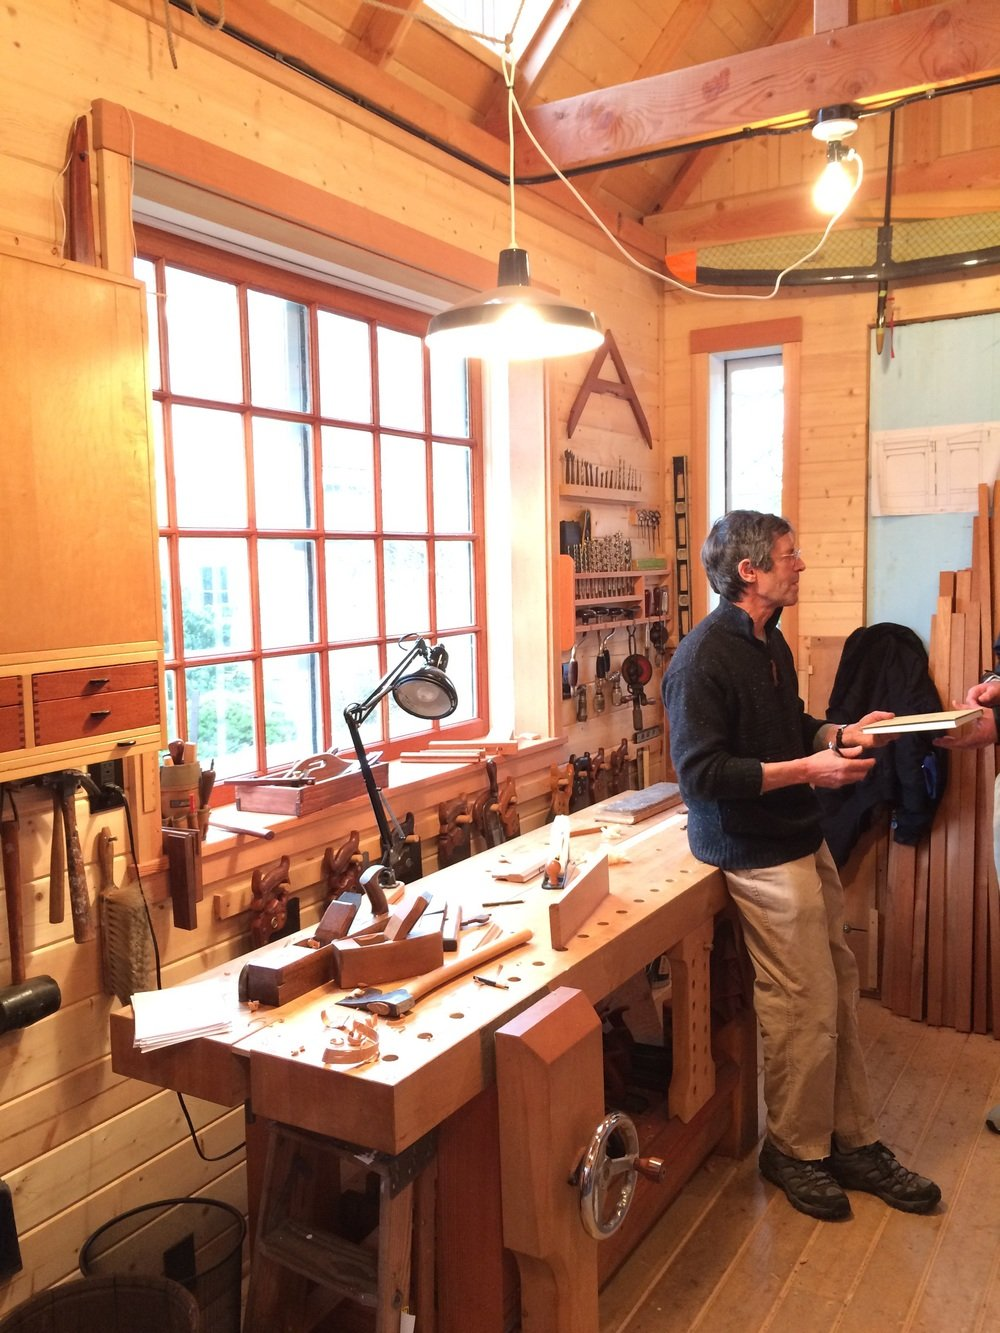 The best unintentional benefit of this class was a tour of Jim's personal hand tool shop.